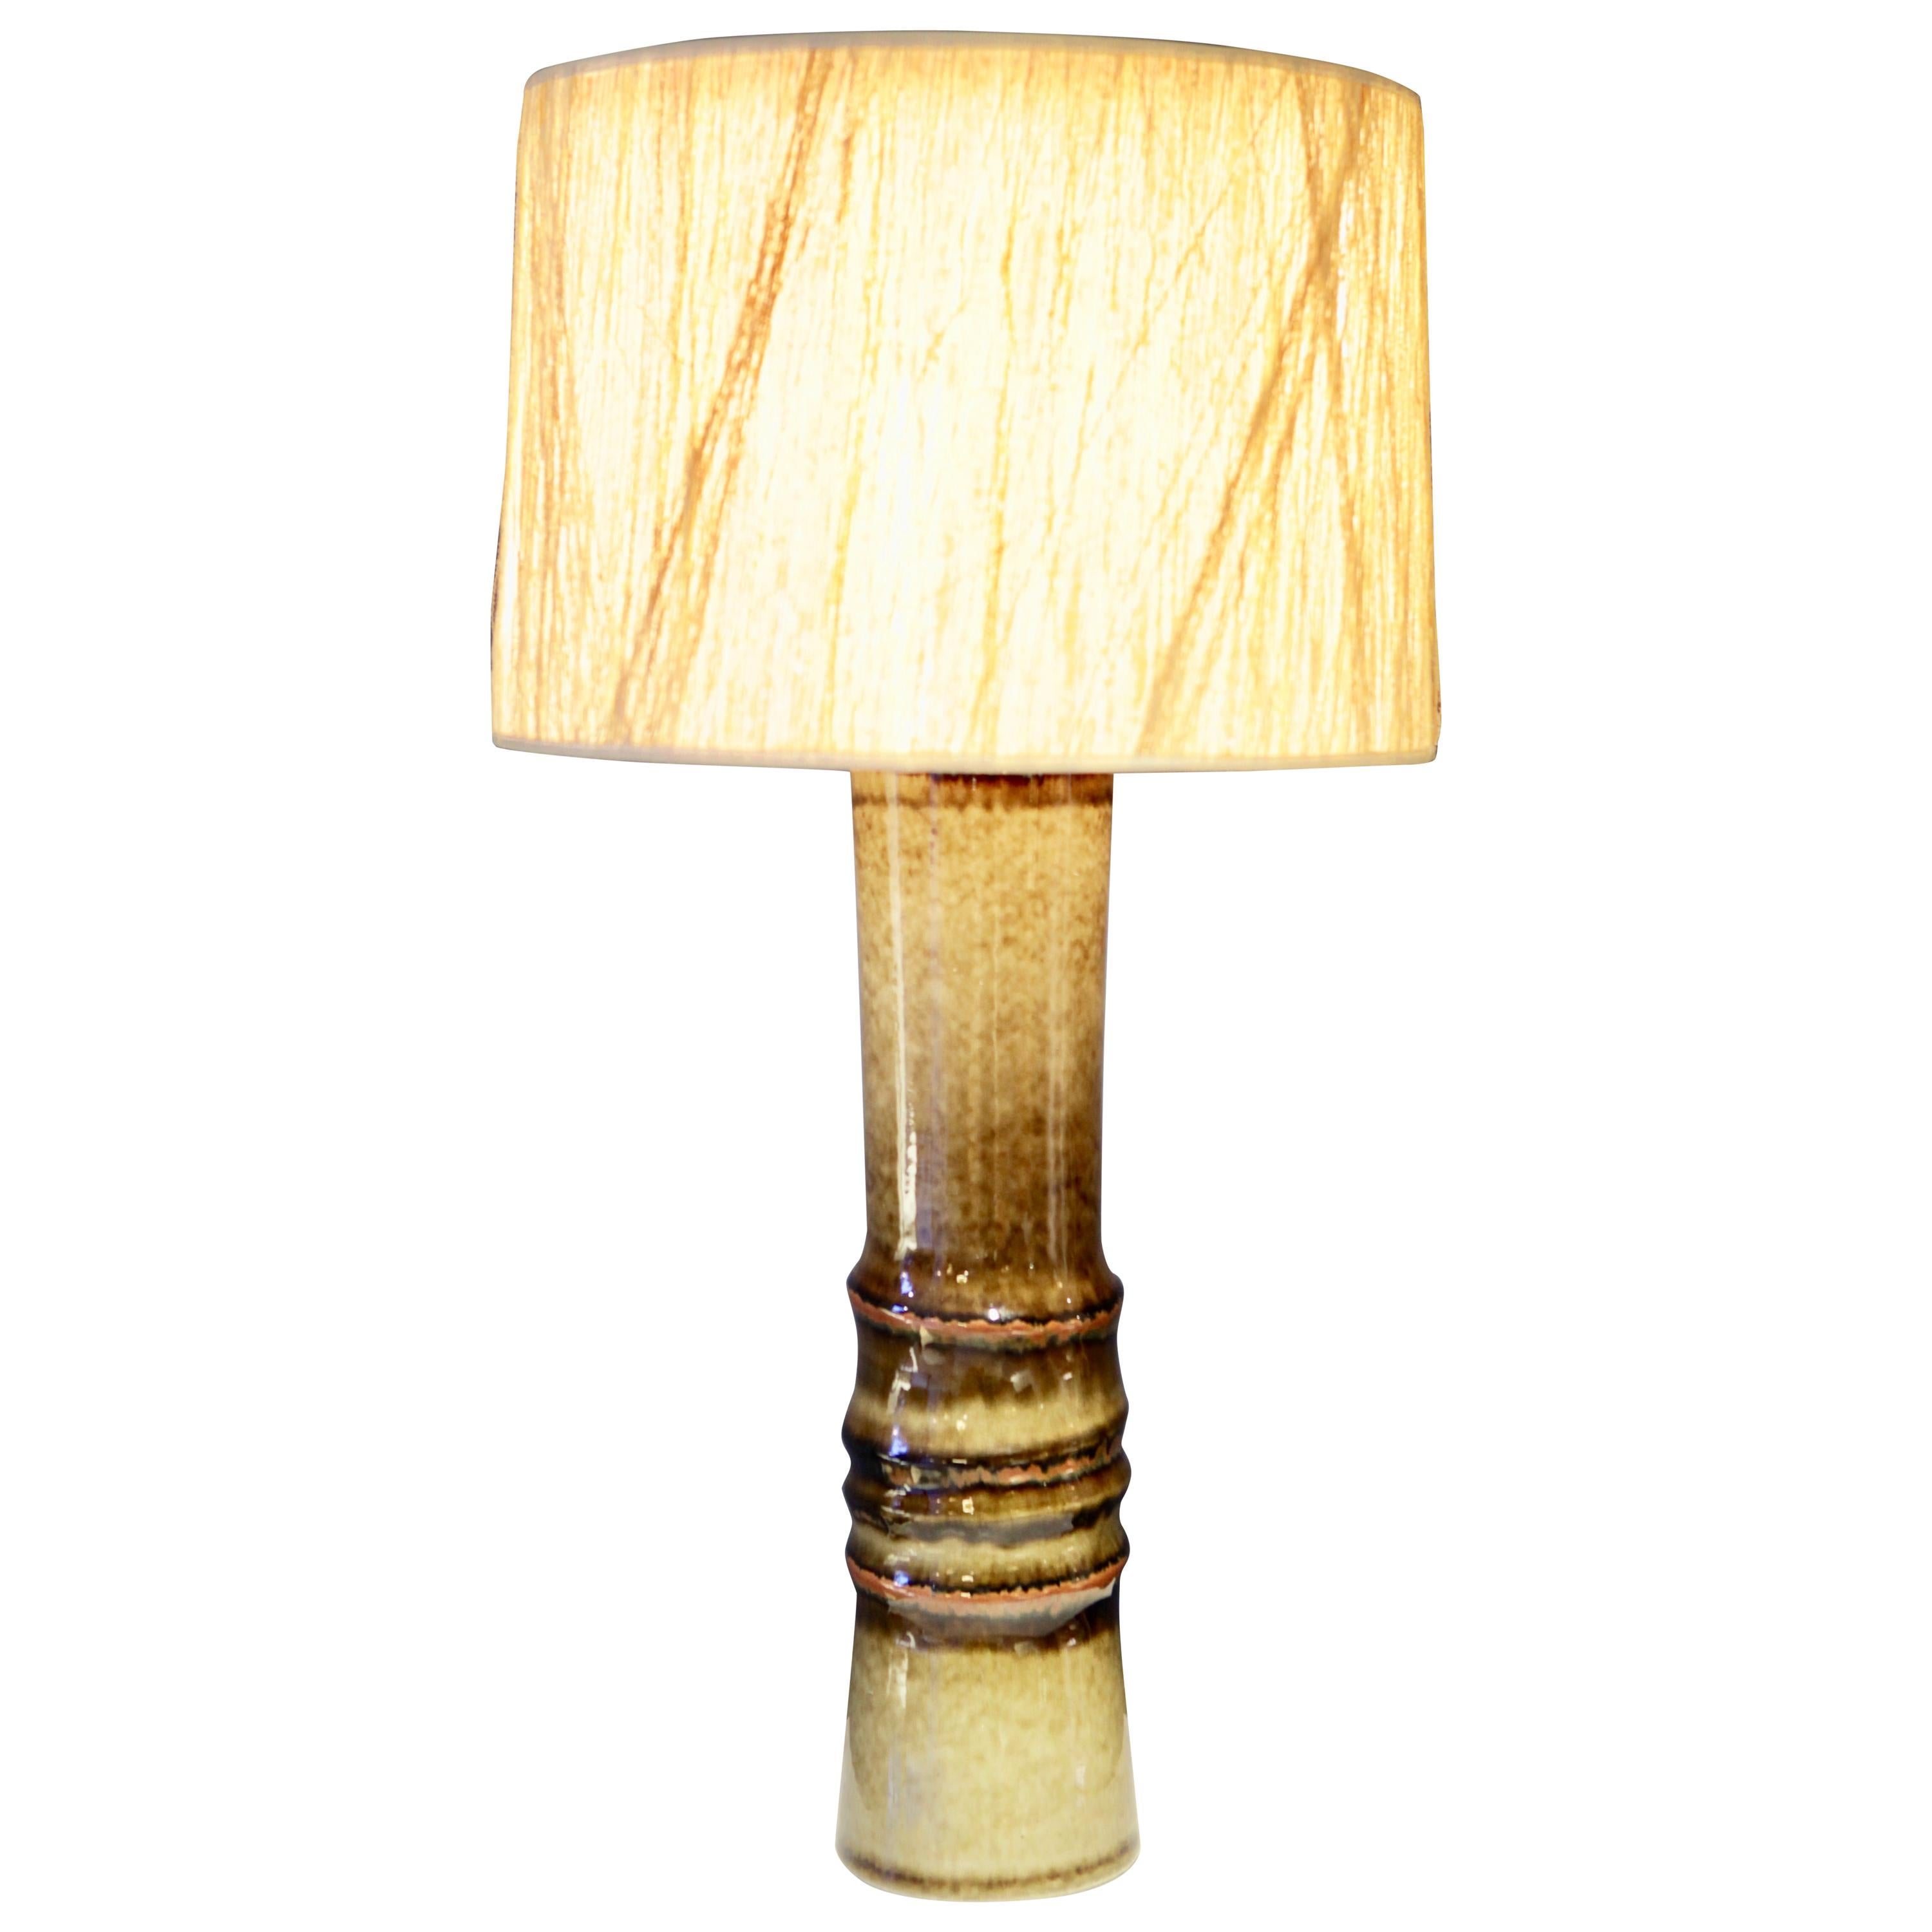 Olle Alberius, Large Table Lamp, Sweden, 1970